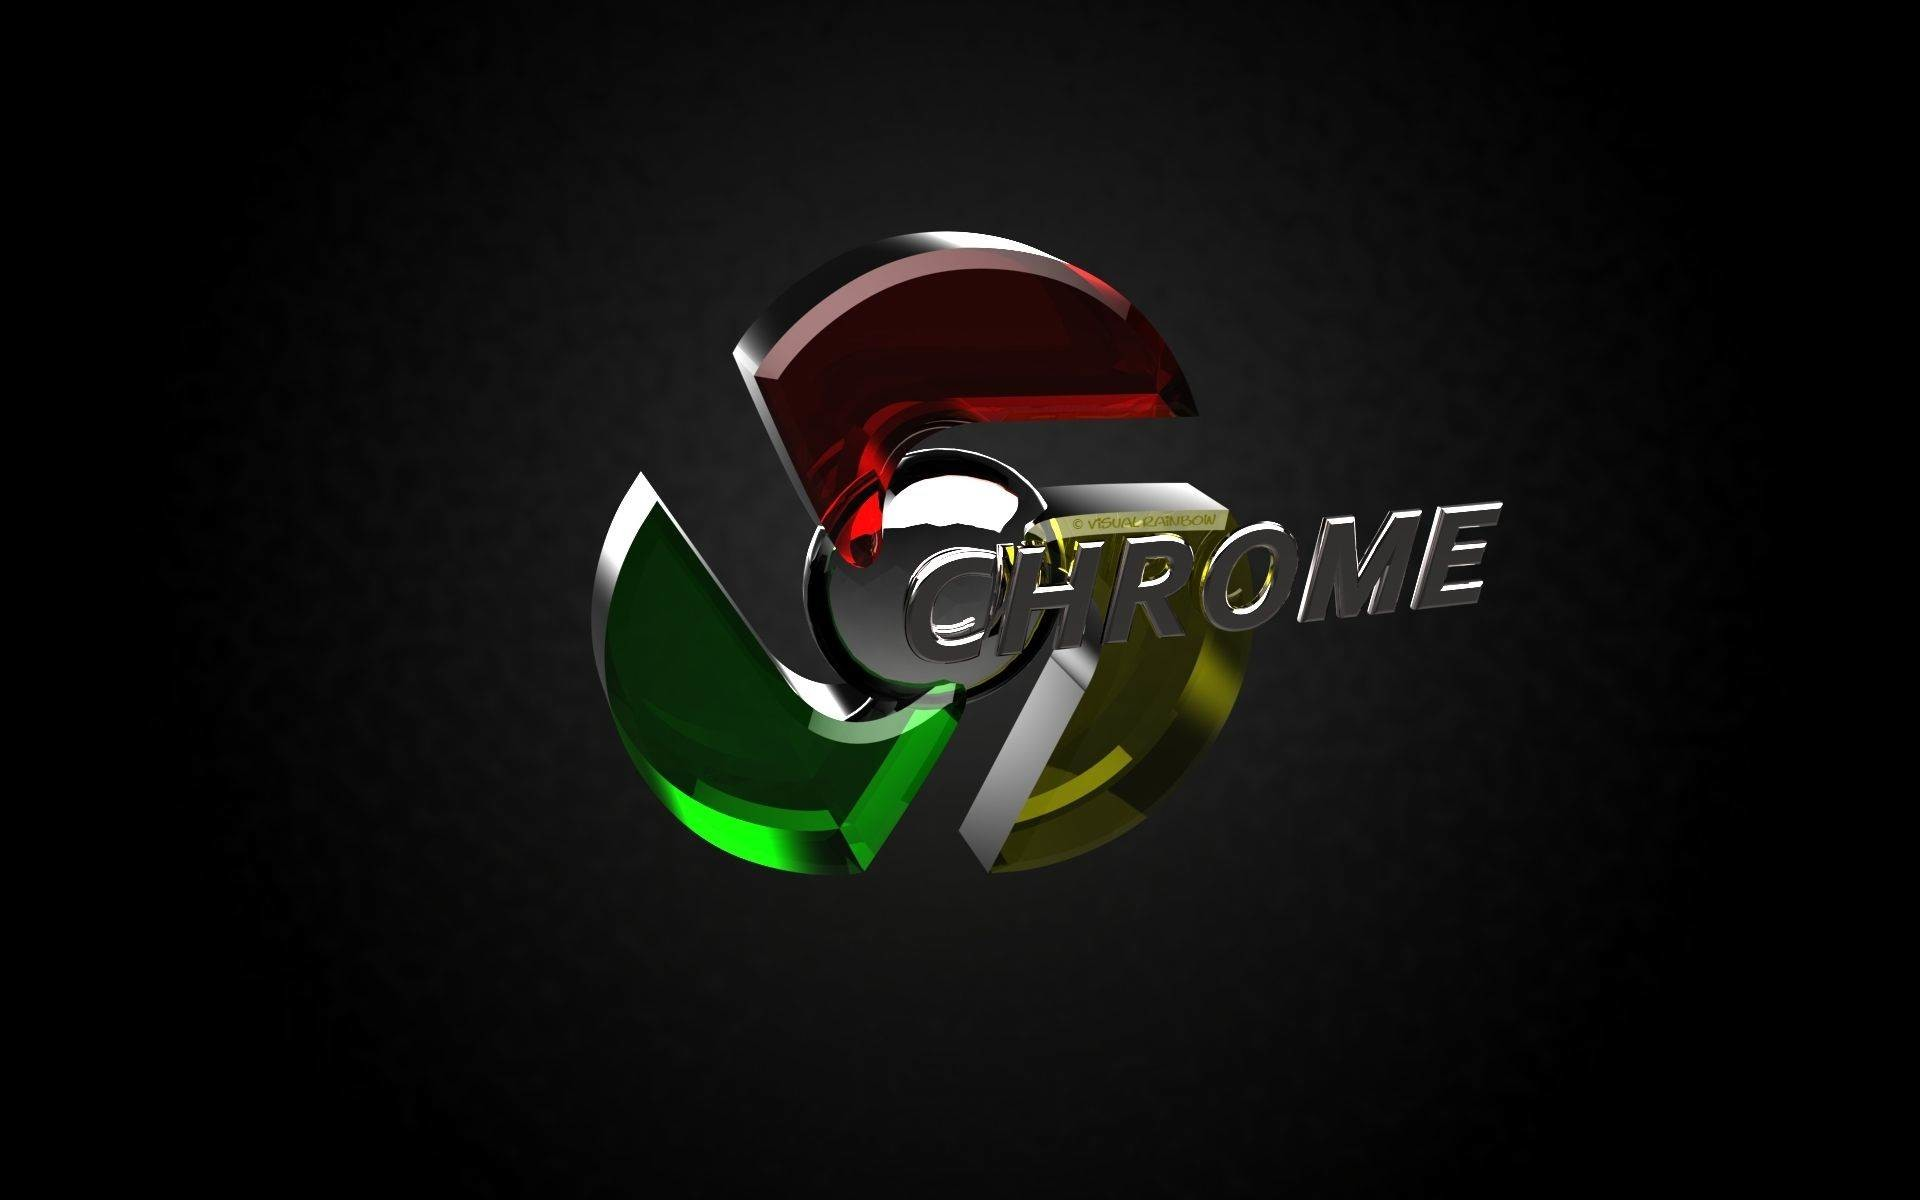 1920x1200 Google Chrome HD Wallpapers Backgrounds Wallpaper 1920×1200